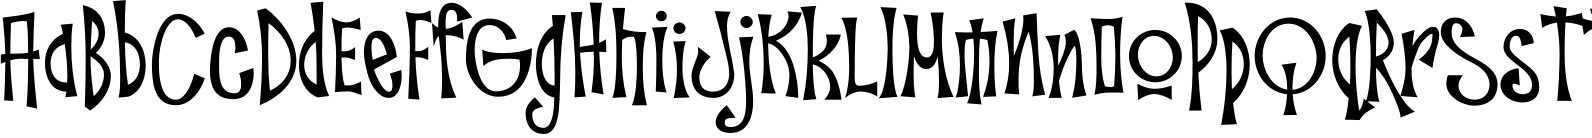 Troutkings BTN Condensed Font